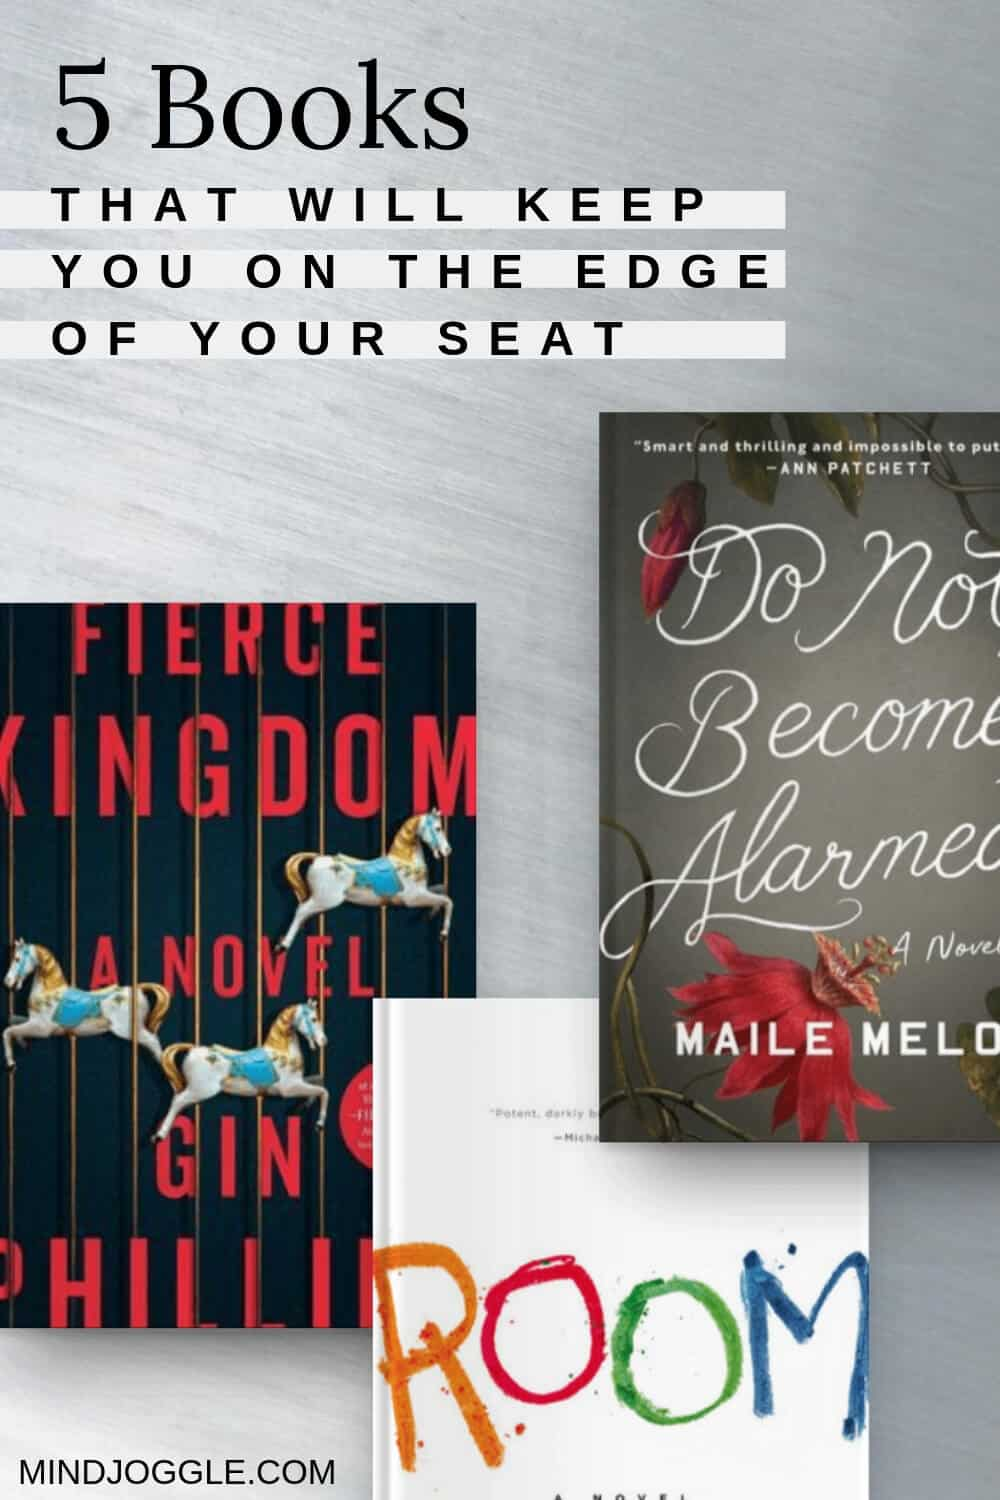 5 Thrilling Books that Will Keep You on the Edge of Your Seat